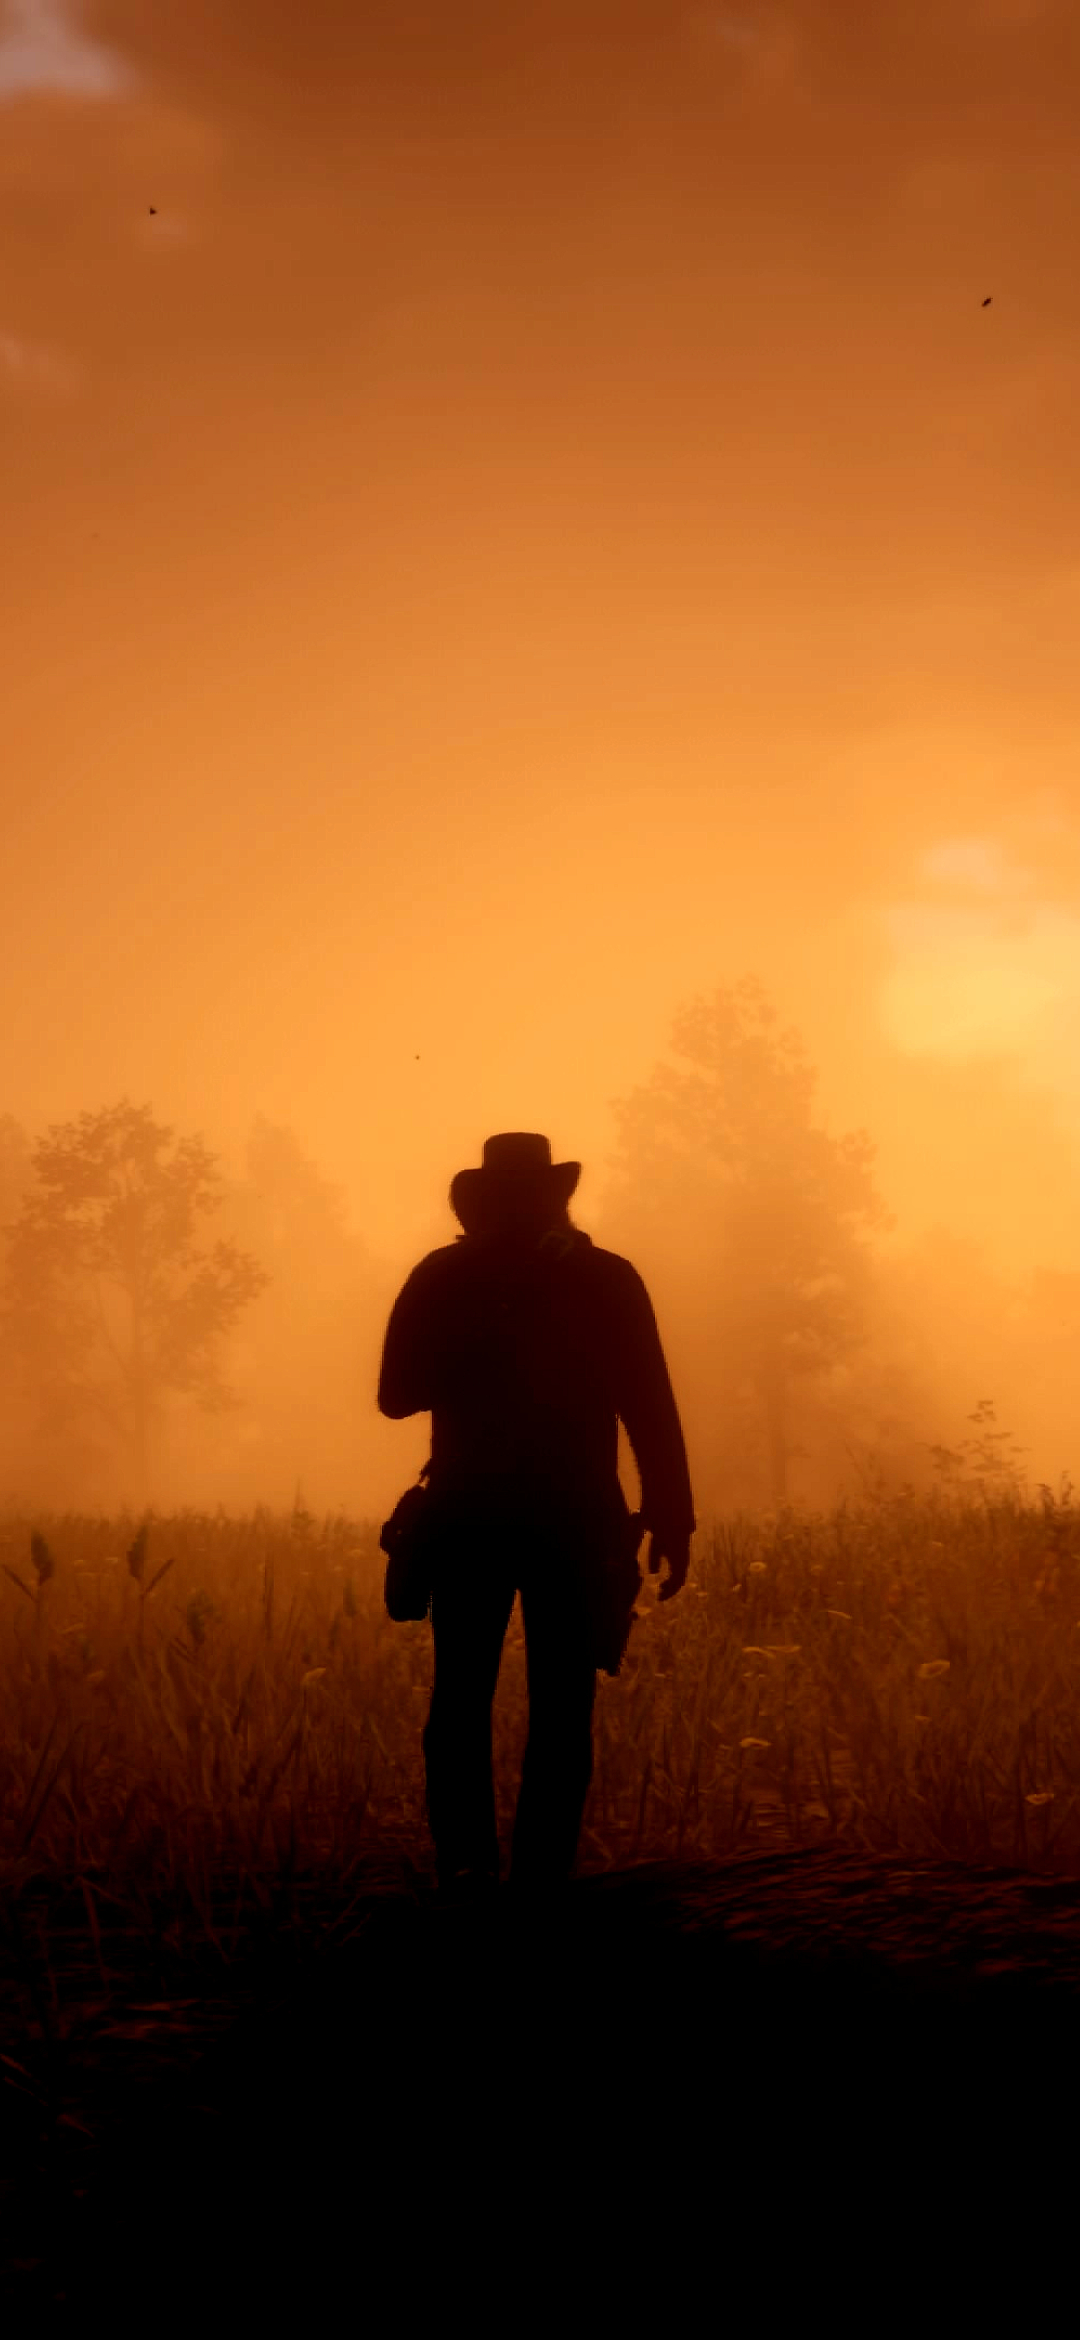 24+ Red Dead Redemption 2 Wallpaper Images